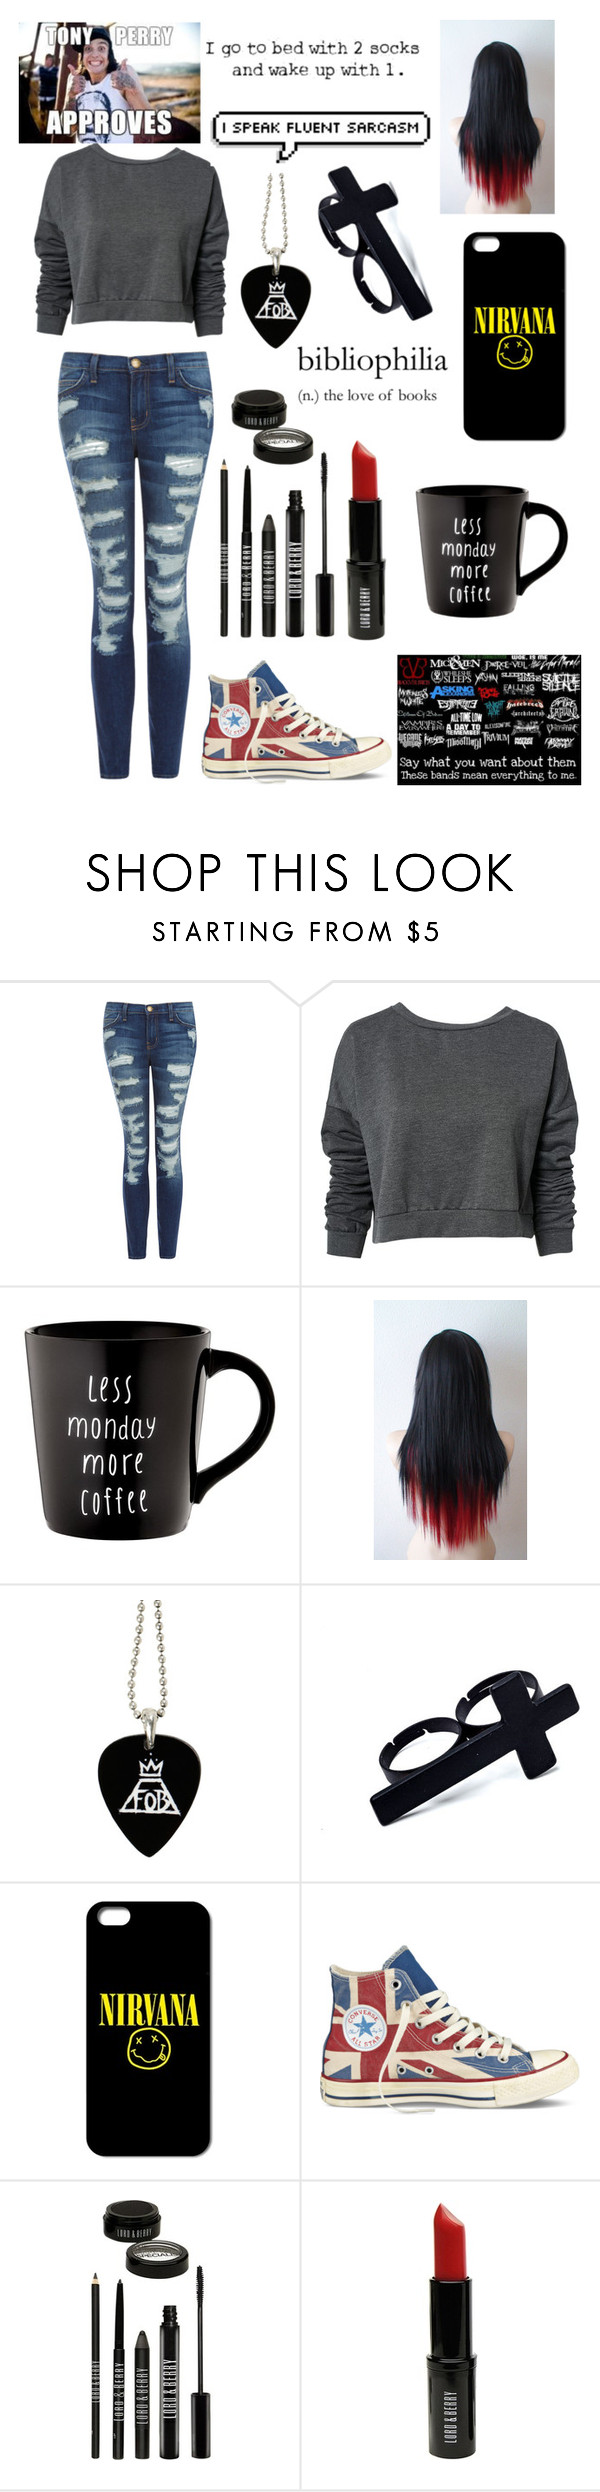 """""""Tony Perry Approves"""" by butternuggetmuke ❤ liked on Polyvore featuring Current/Elliott, ONLY, Converse and Lord & Berry"""